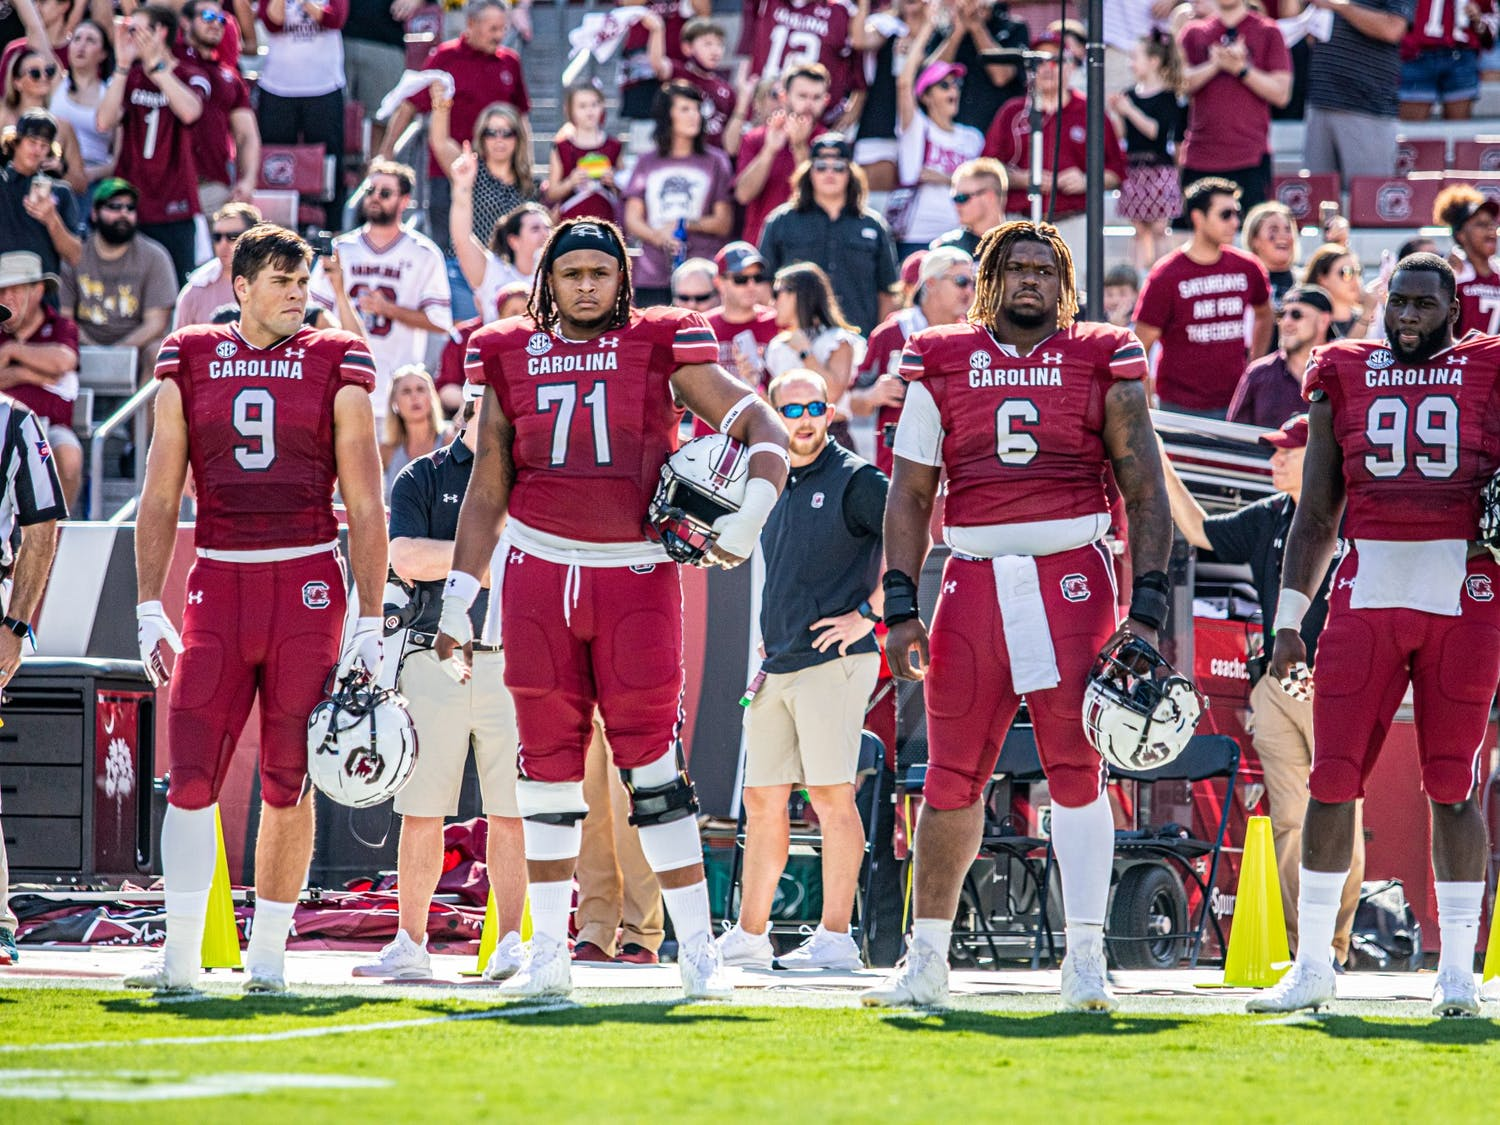 Carolina players lined up awaiting to do the coin toss at the Troy Football Game on Saturday October 2, 2021.